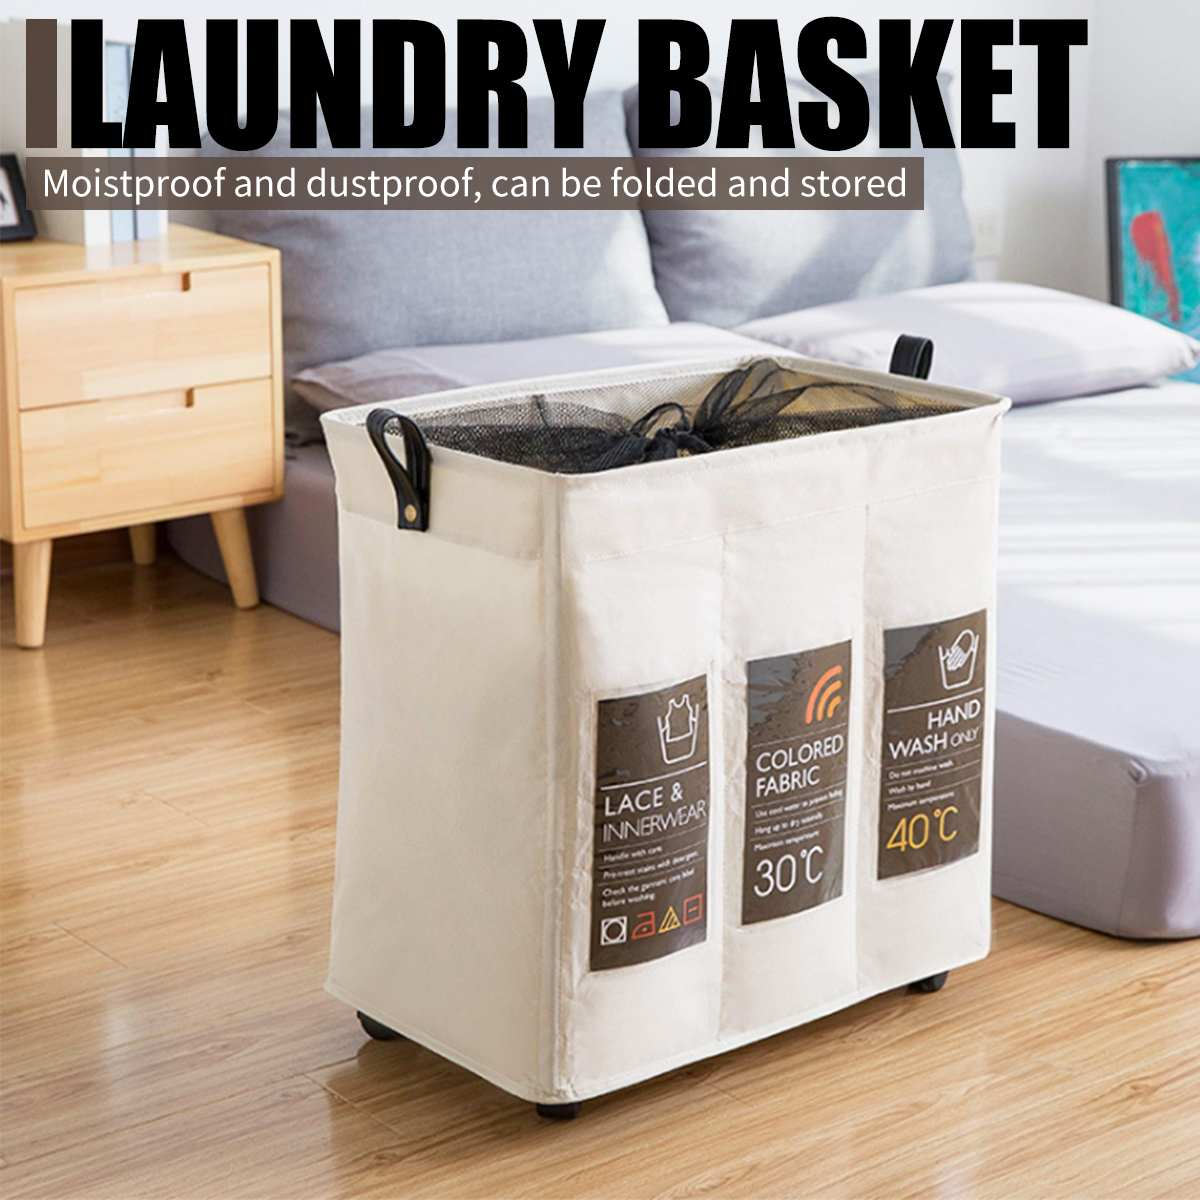 Three Grid Storage Basket With Wheels Collapsible Hamper Drawstring Laundry Basket Dirty Clothes Washing Bag Storage Organizer